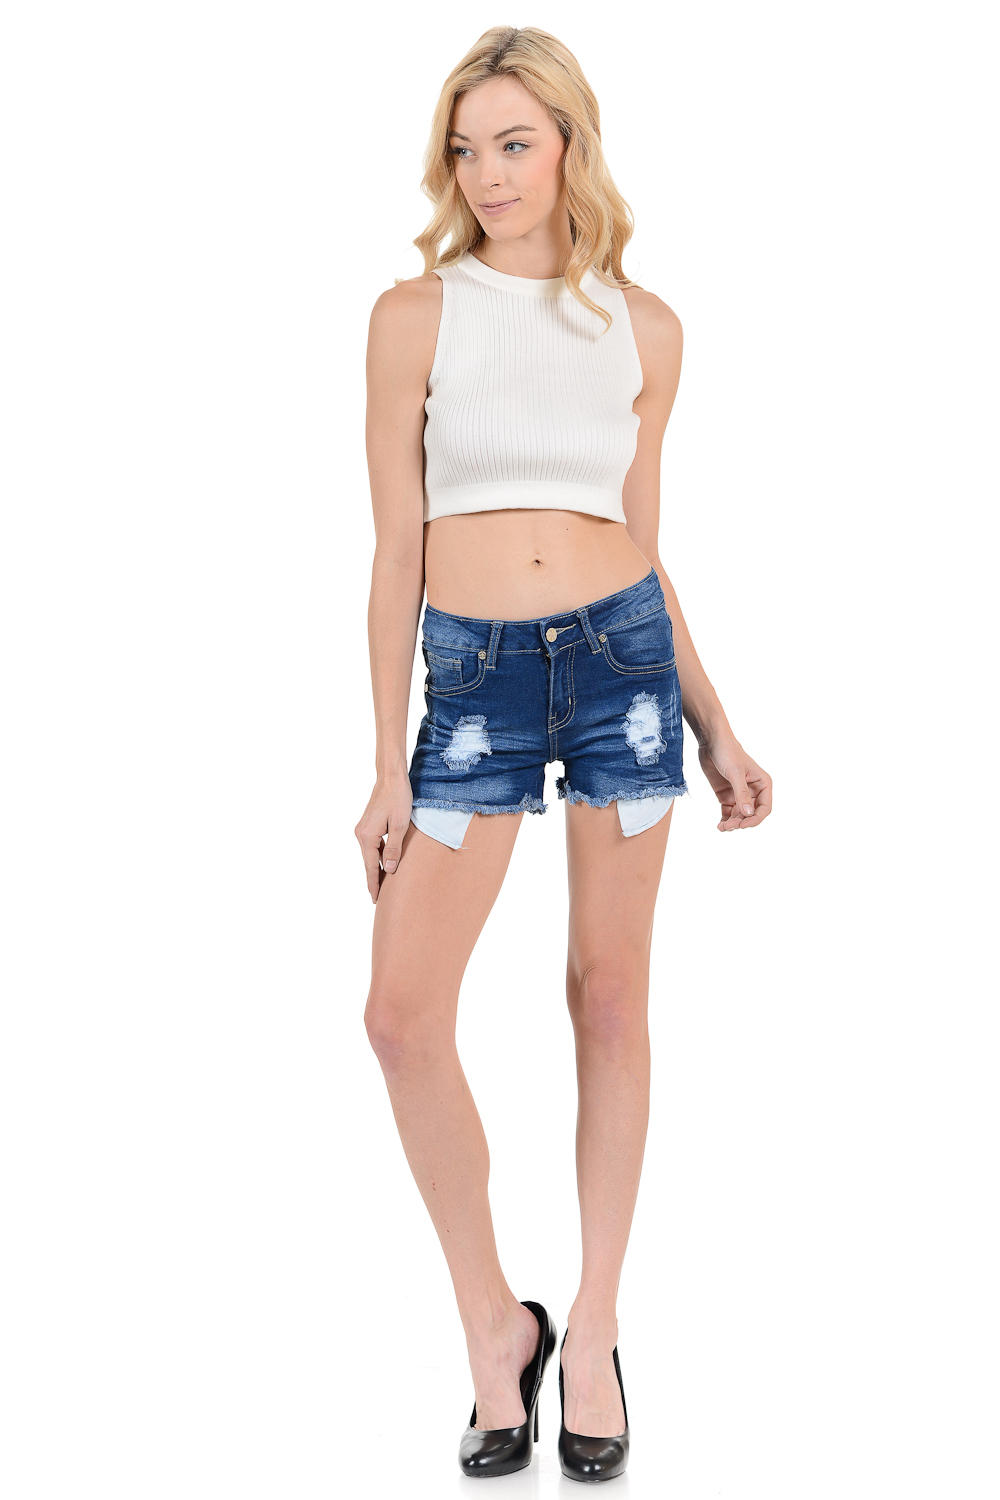 Sweet Look Women's Shorts - Style 14748A-R